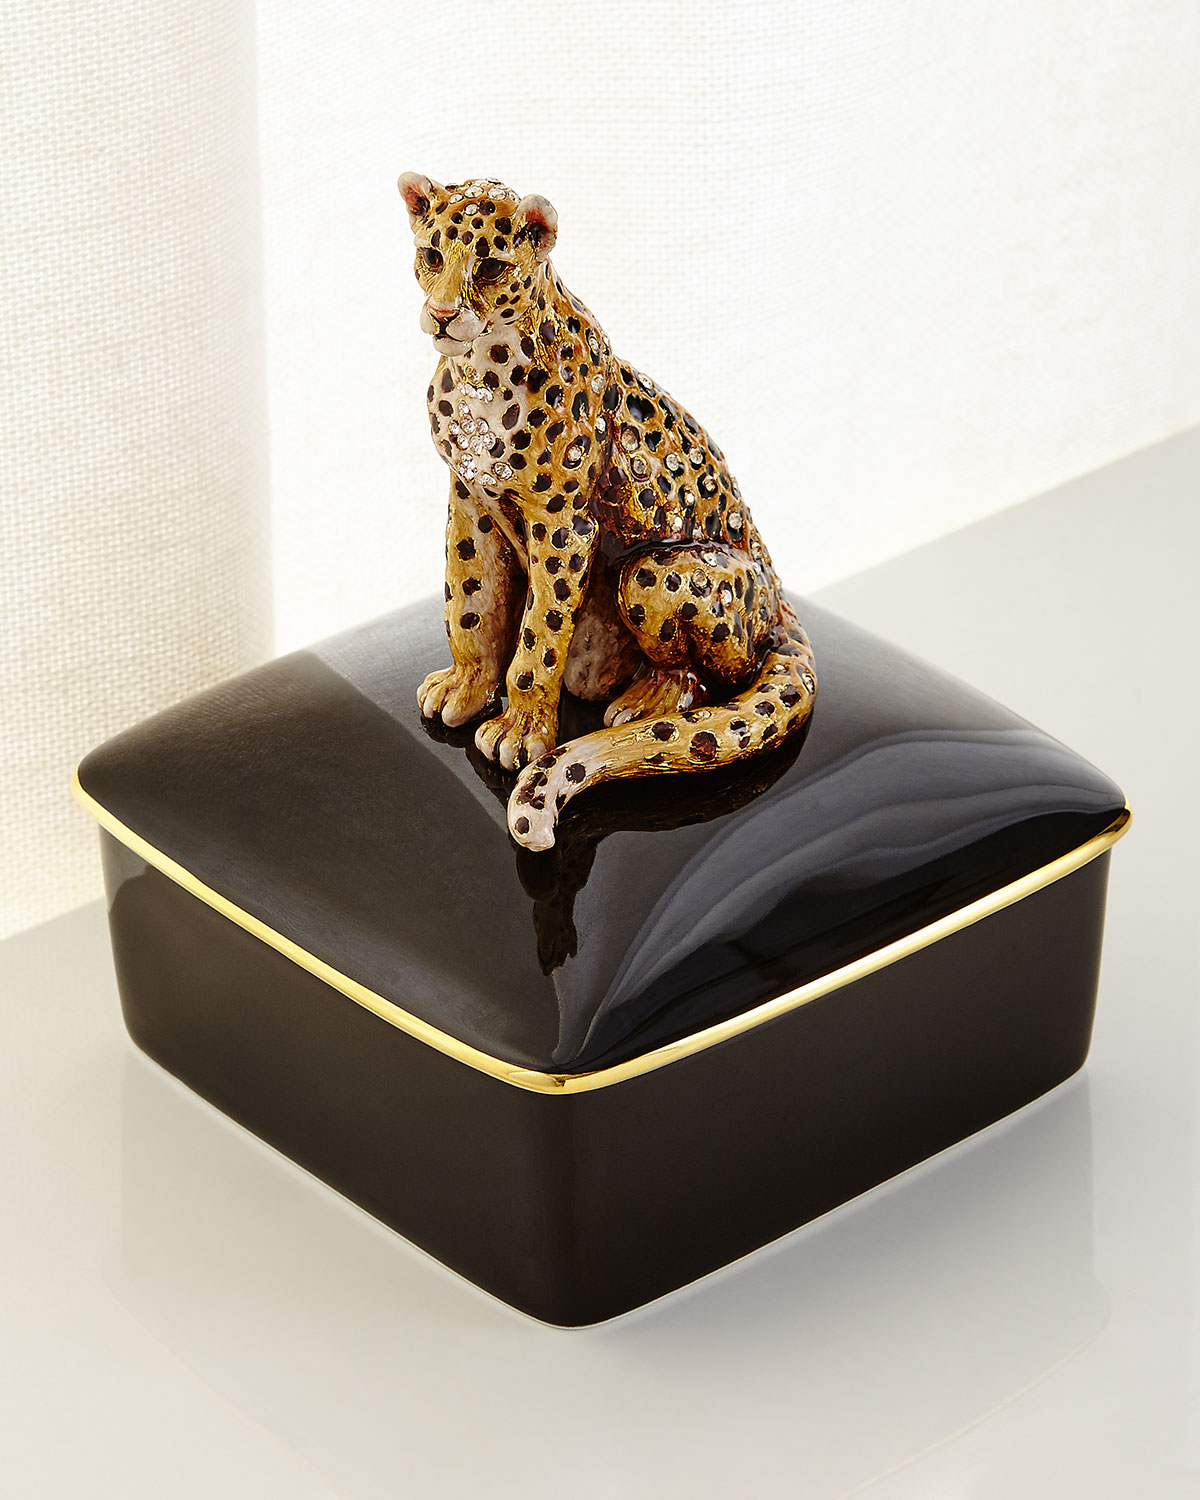 Leopard Porcelain Box by Jay Strongwater - Little Luxuries Gift Guide - Good Things in Small Packages